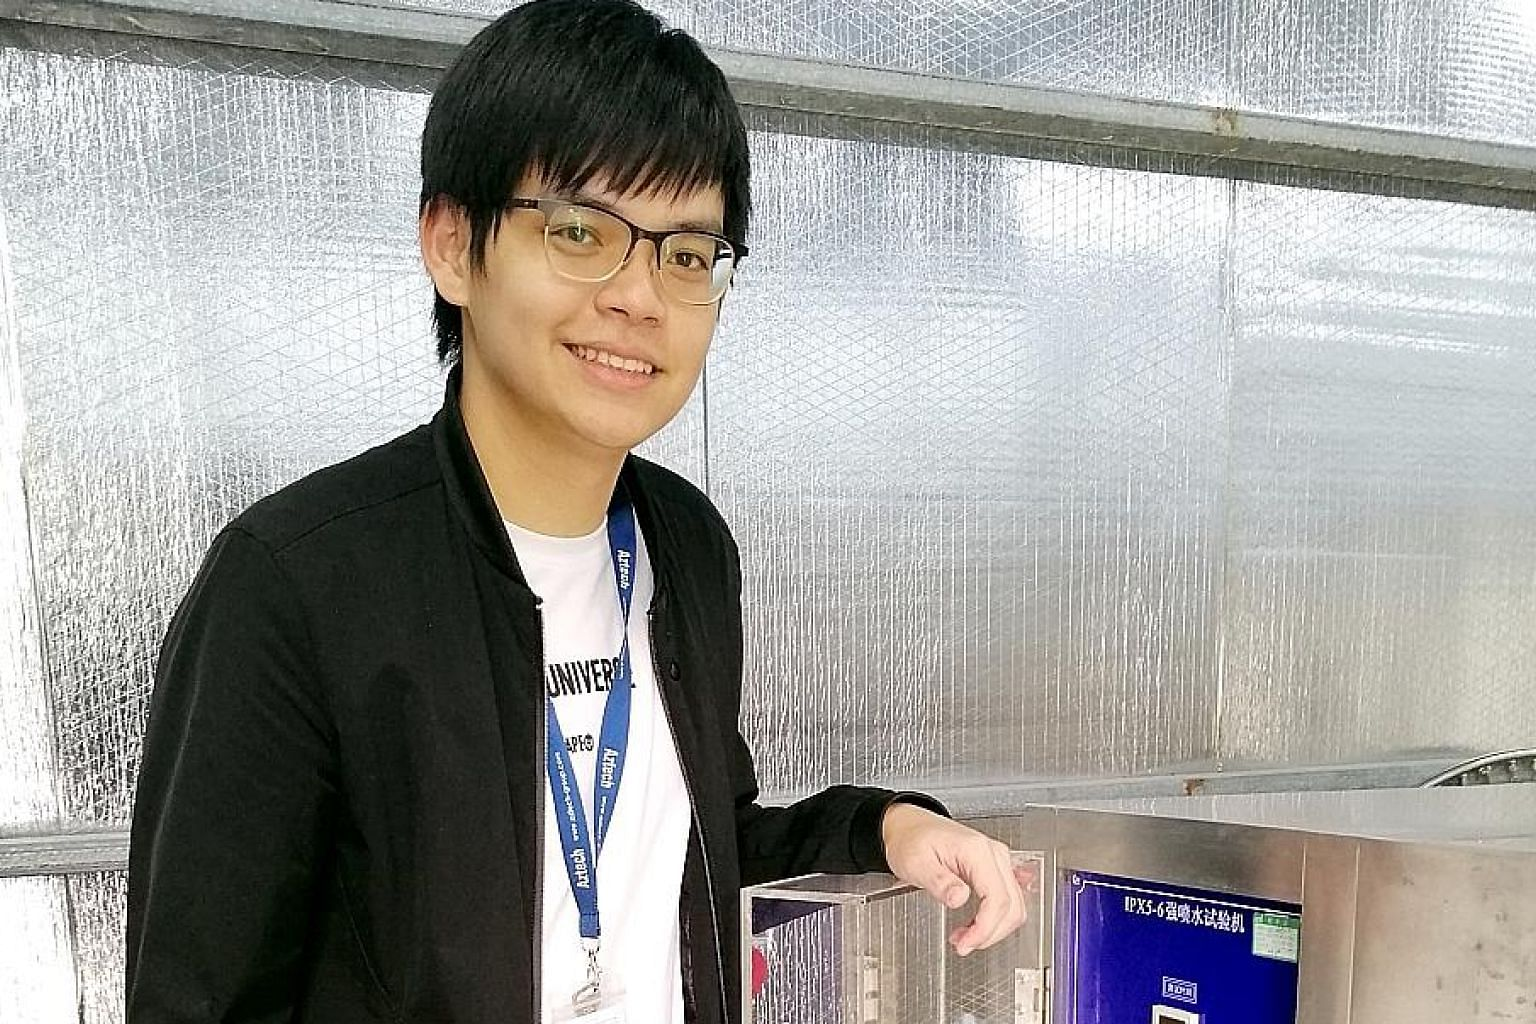 Third-year Ngee Ann Polytechnic student Chew Jing Hong, 23, interned for six months with electronics manufacturer Aztech Technologies, of which the last three months were at Aztech's Dong Guan facility in China.